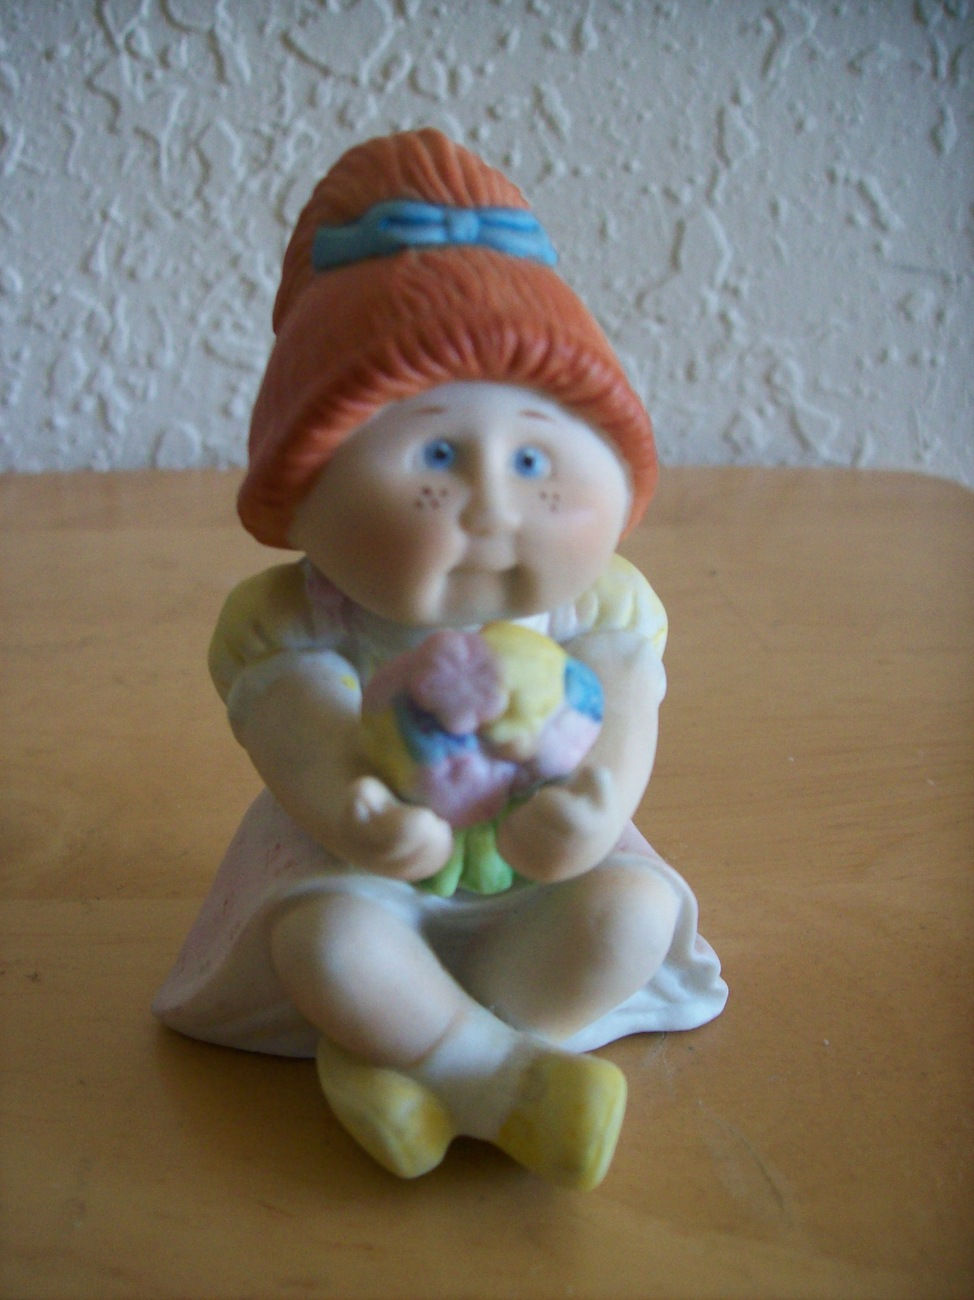 1984 Vintage Red Haired Ceramic Cabbage Patch Doll Figurine